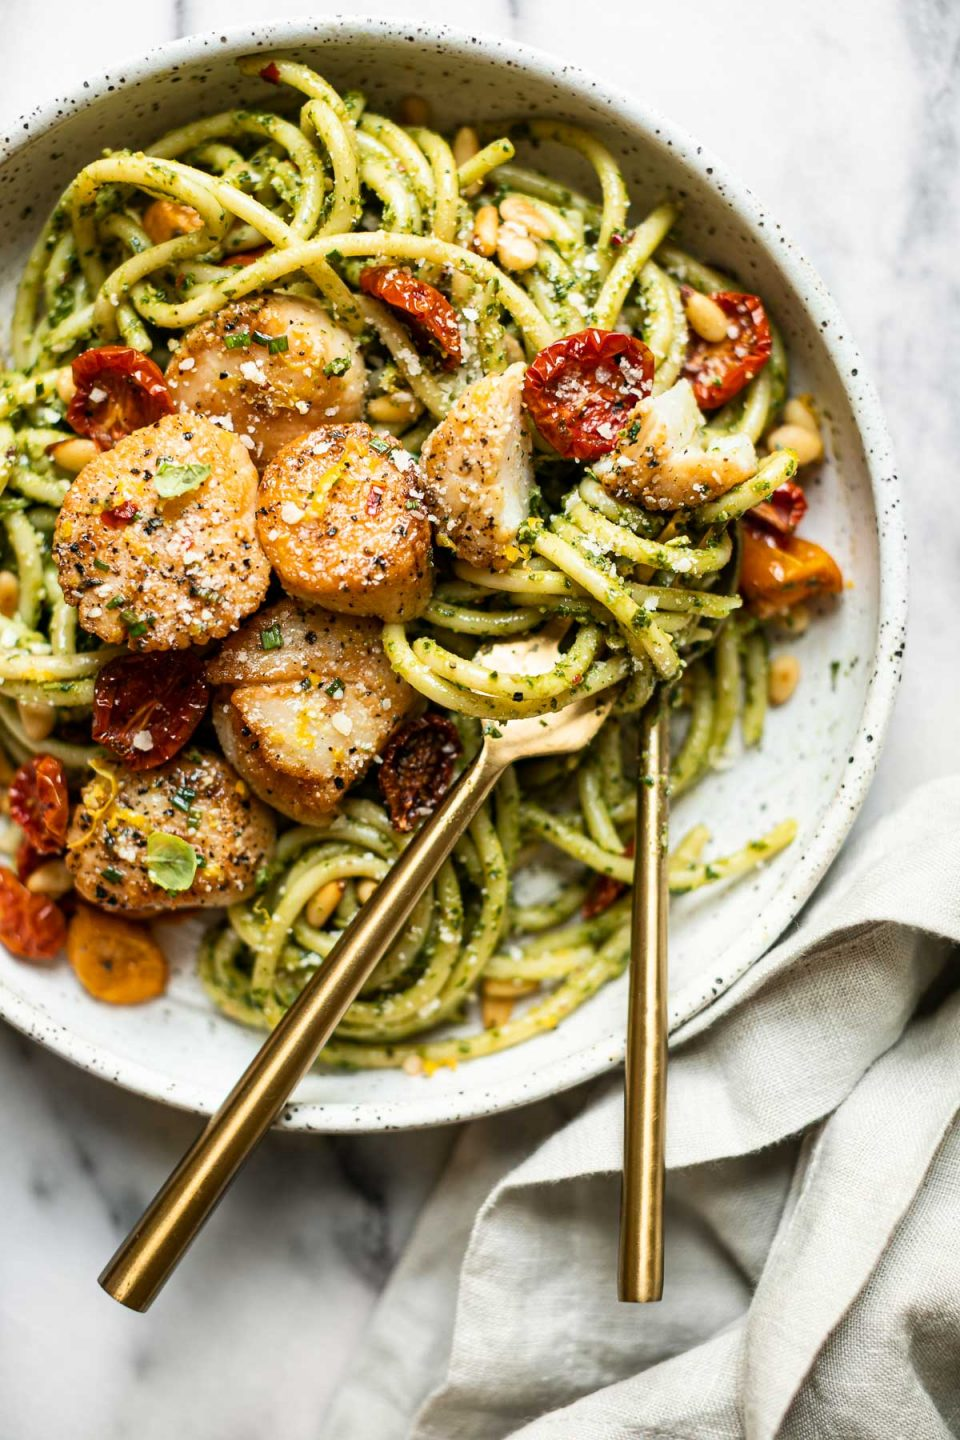 Seared Scallops and Kale Pesto pasta in a black & white speckled pasta bowl. A gold fork & spoon rests inside the bowl & is tucked into the pasta ready to serve. The bowl sits on a grey and white marble surface. A light grey linen napkin is tucked under the platter in the foreground.